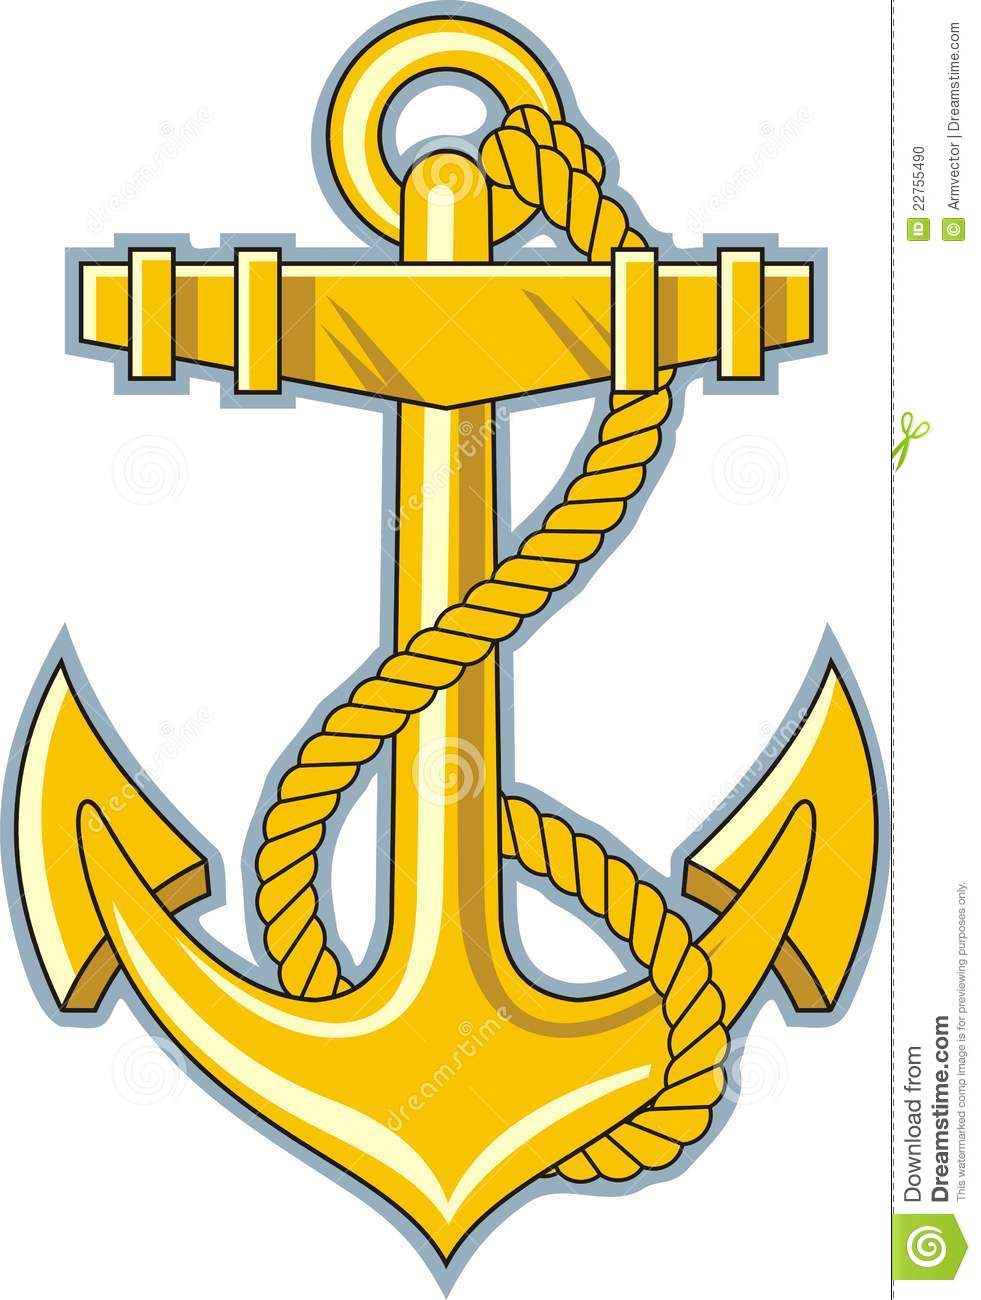 Gold Anchor Stock Photo Image 22755490 clipart.